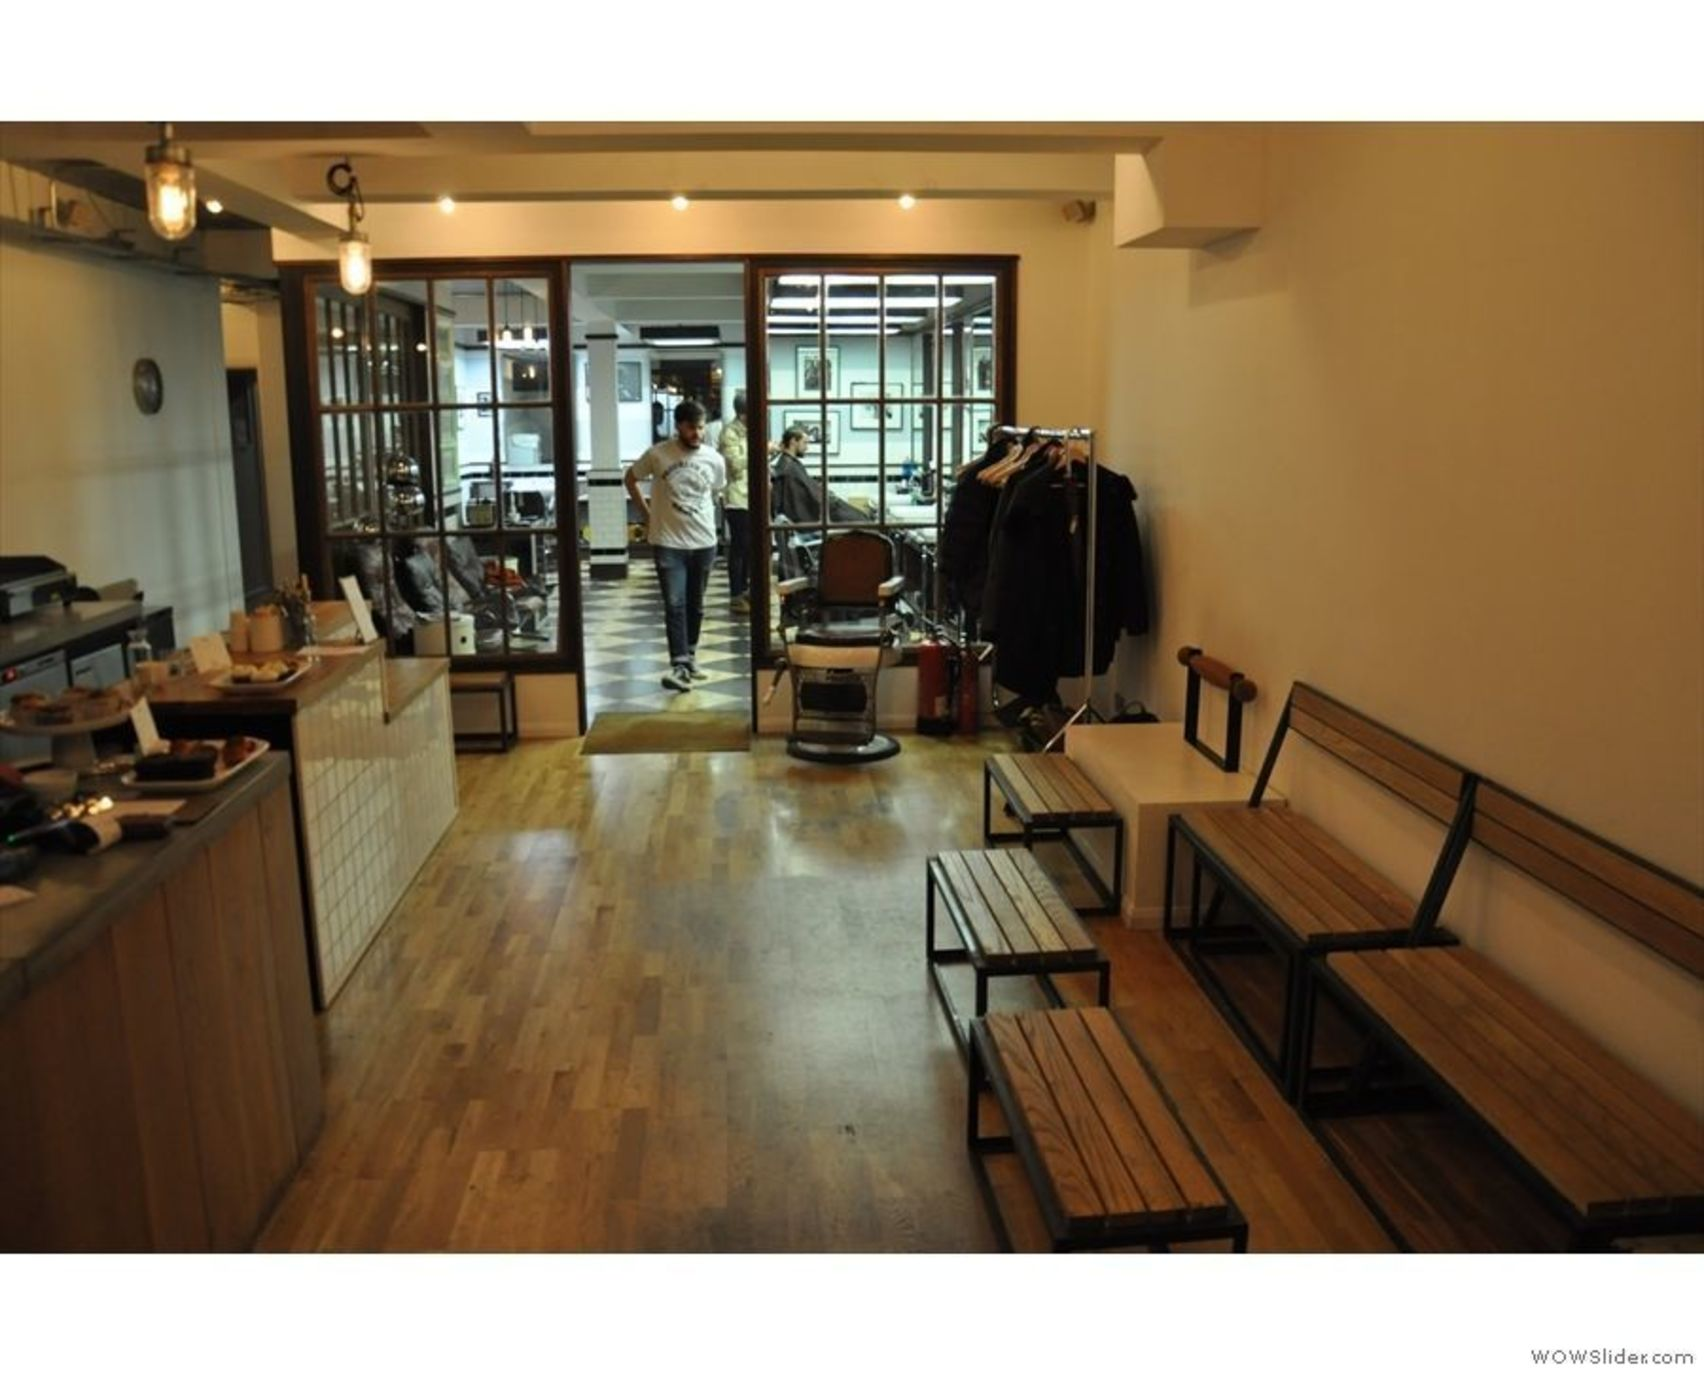 Entire Barber & Cafe, Sharps Barber Fitzrovia